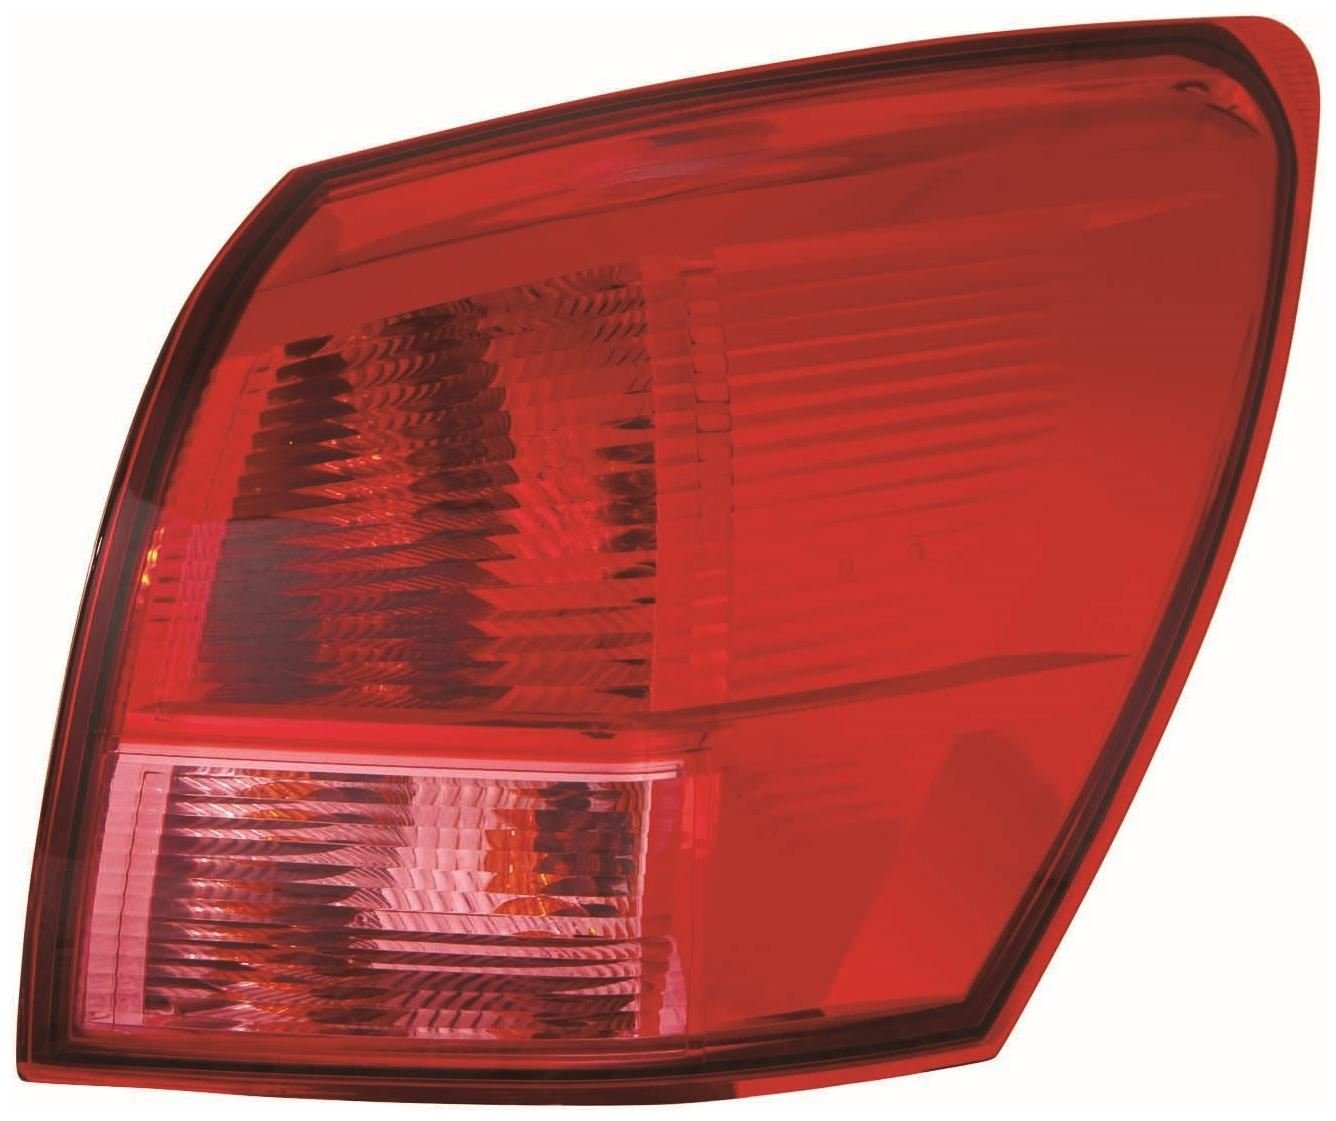 Qashqai 2007-2010 Outer Wing Rear Tail Light Lamp O//S Drivers Right